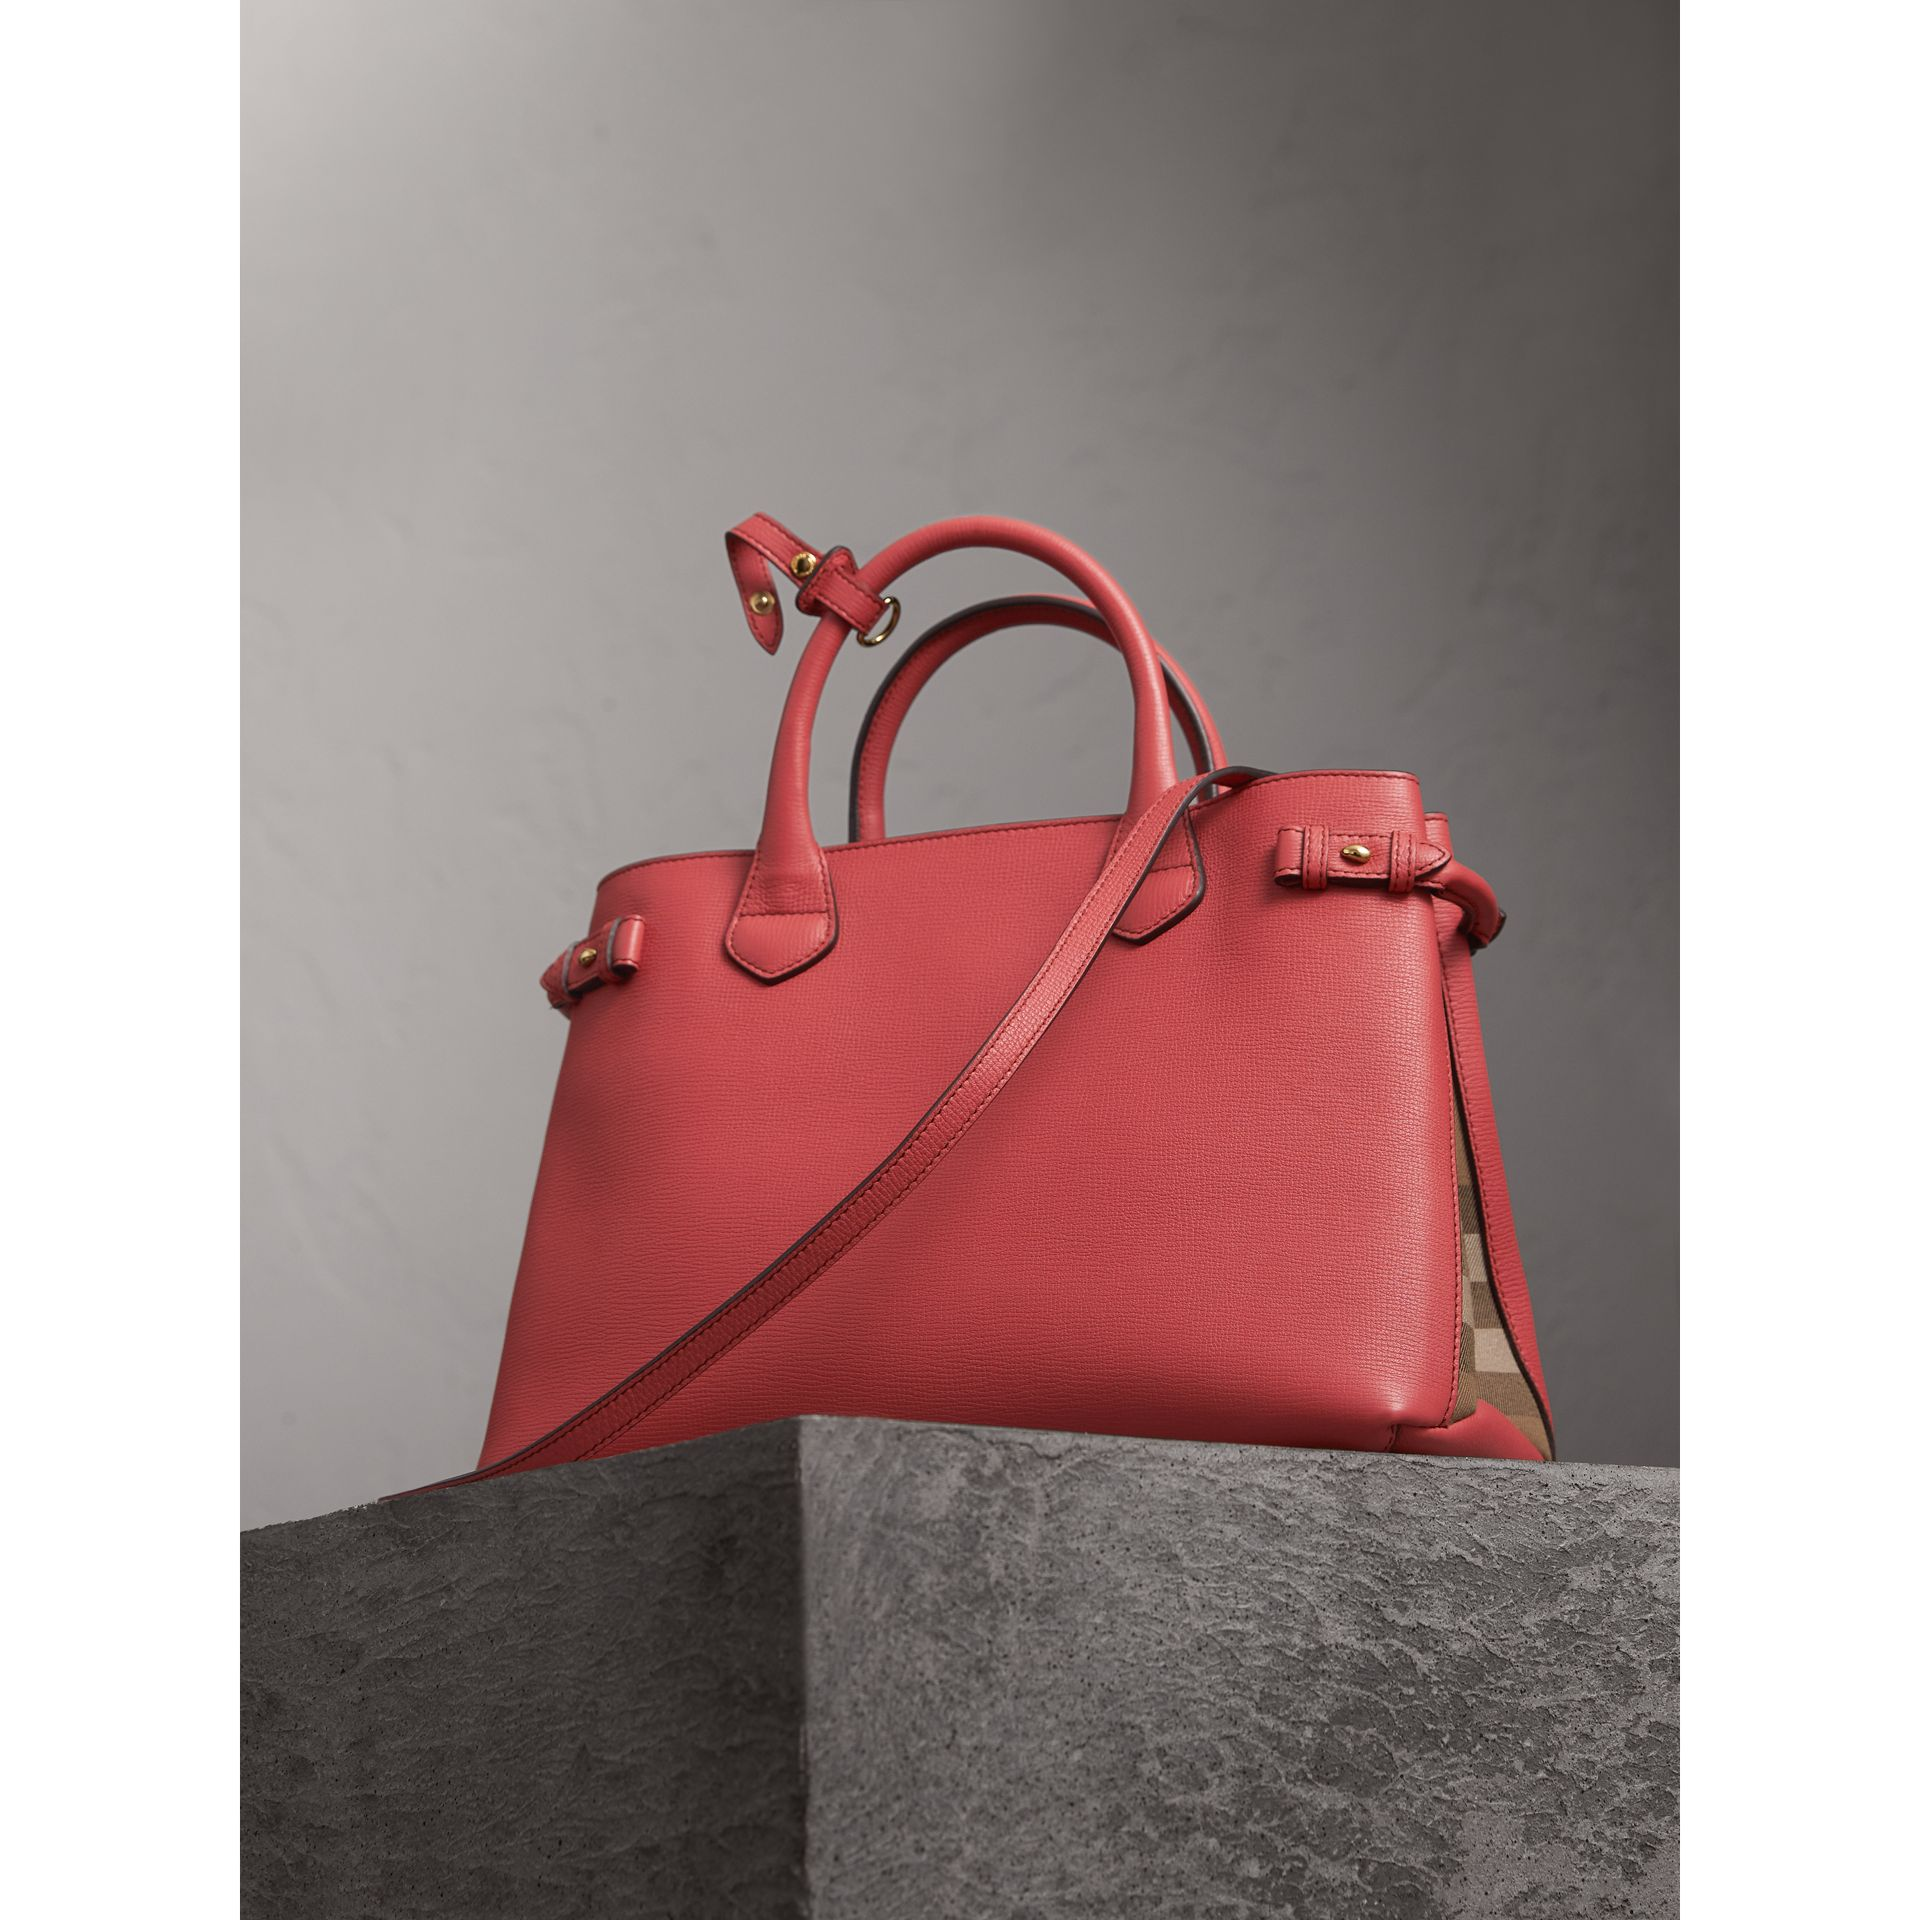 Sac The Banner moyen en cuir et coton House check (Cannelle Rouge) - Femme | Burberry - photo de la galerie 4